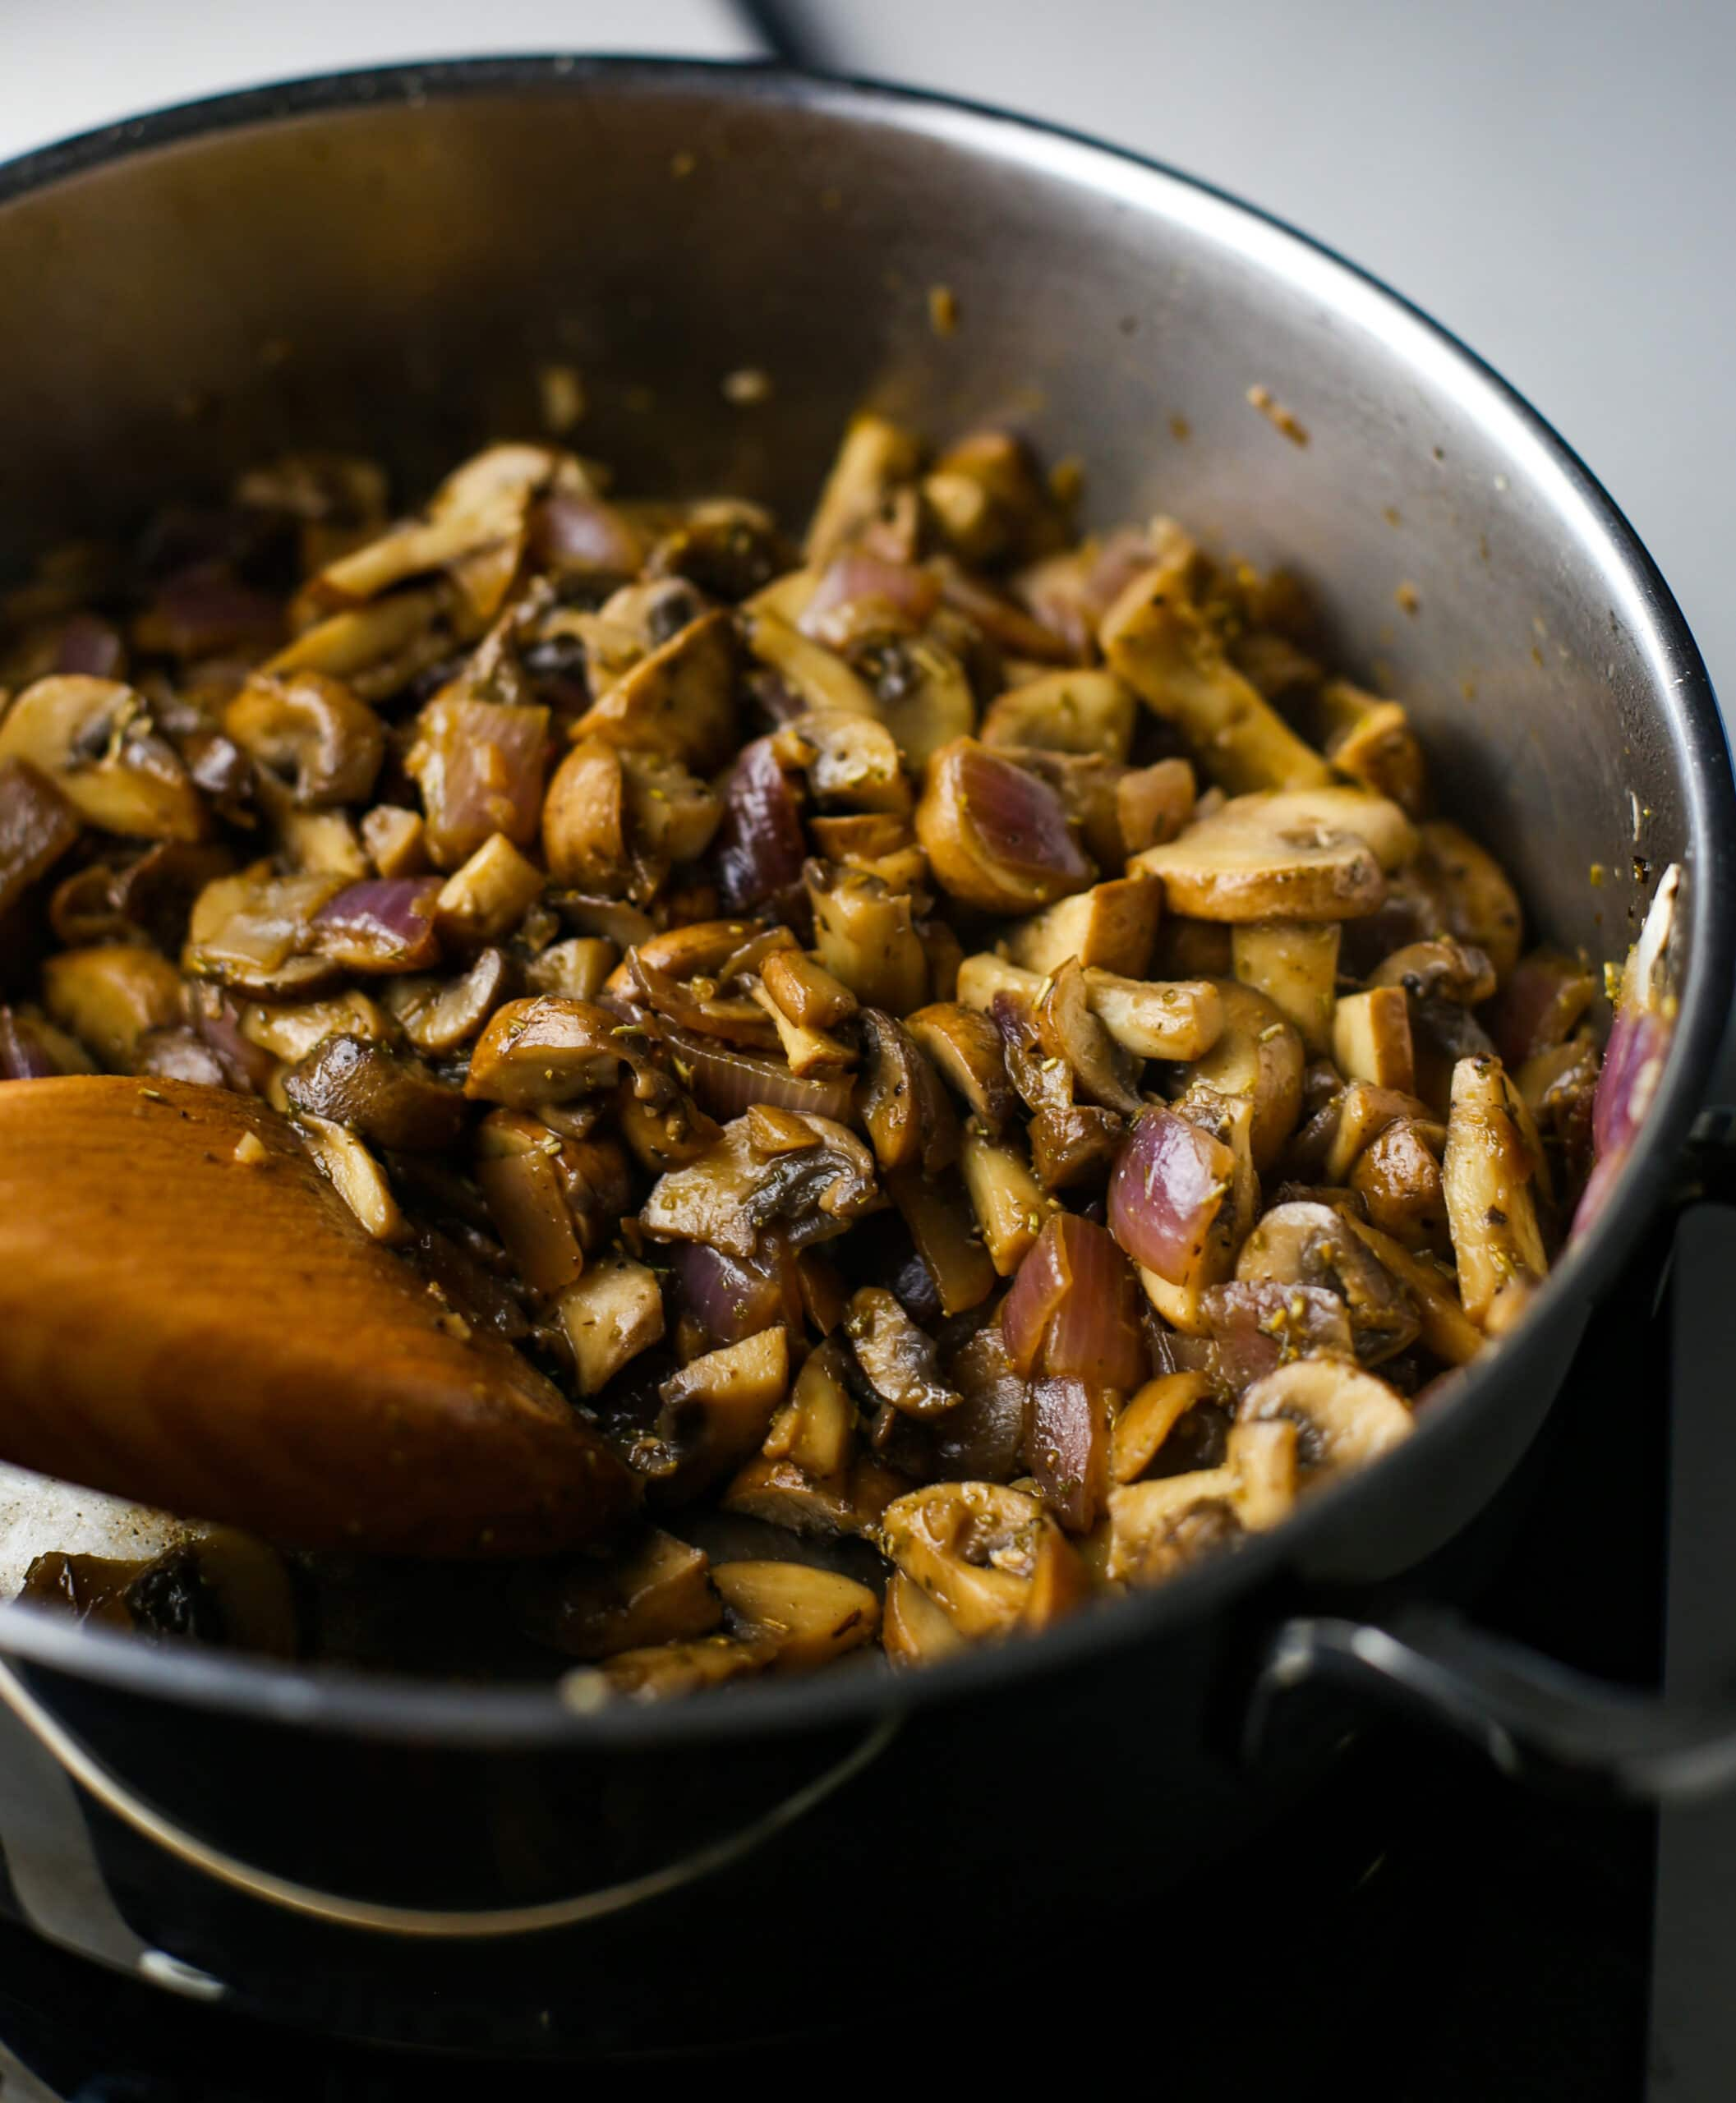 Sauteed browned sliced cremini mushrooms and red onions in a stainless steel saucepan.